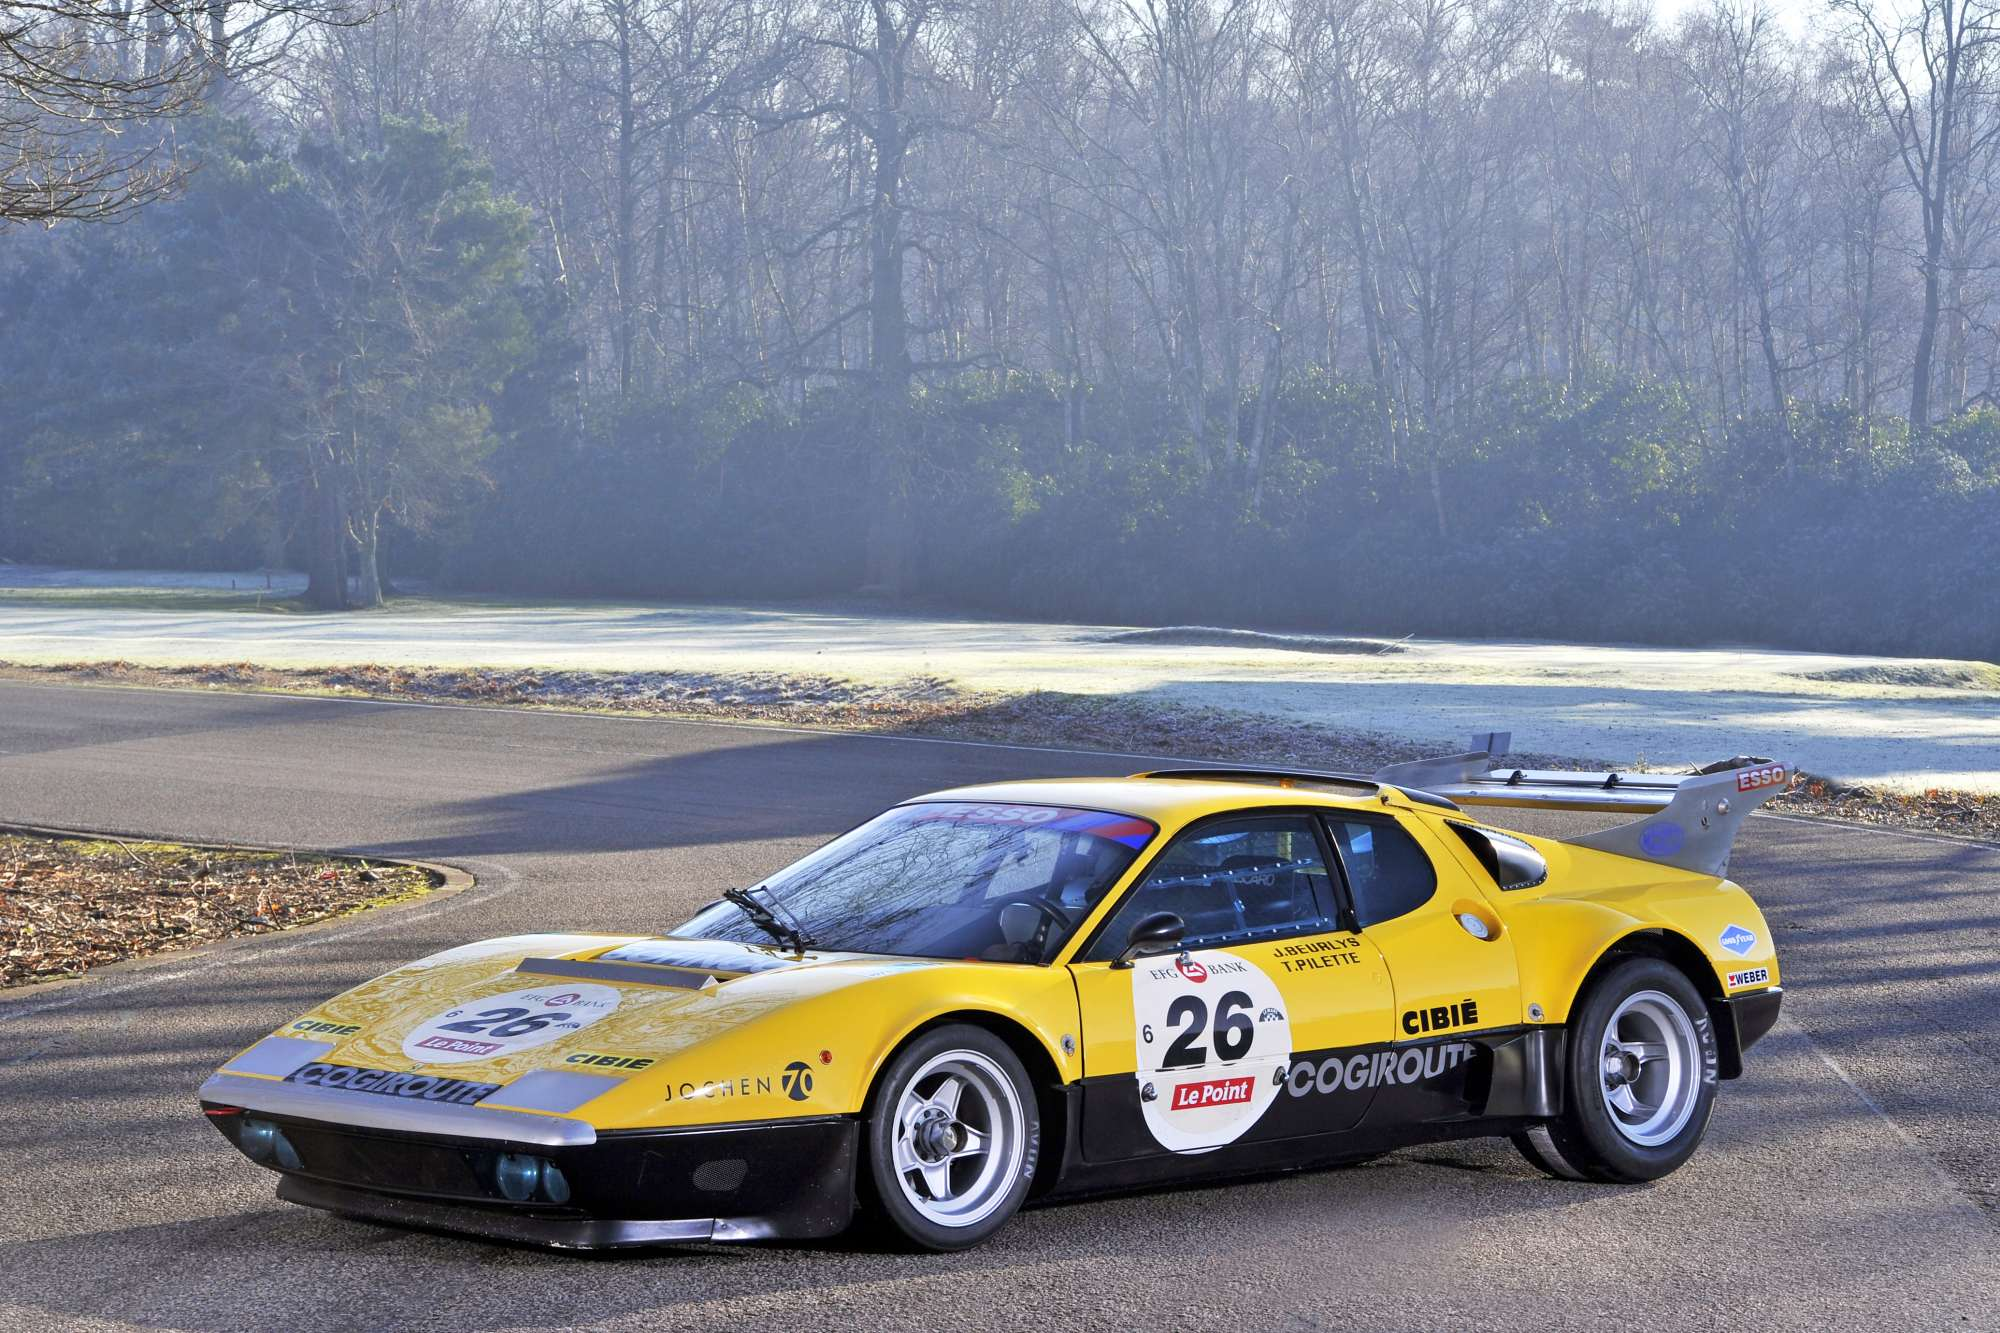 1978 ferrari 512 bb ex ecurie francorchamps previously sold fiskens. Black Bedroom Furniture Sets. Home Design Ideas